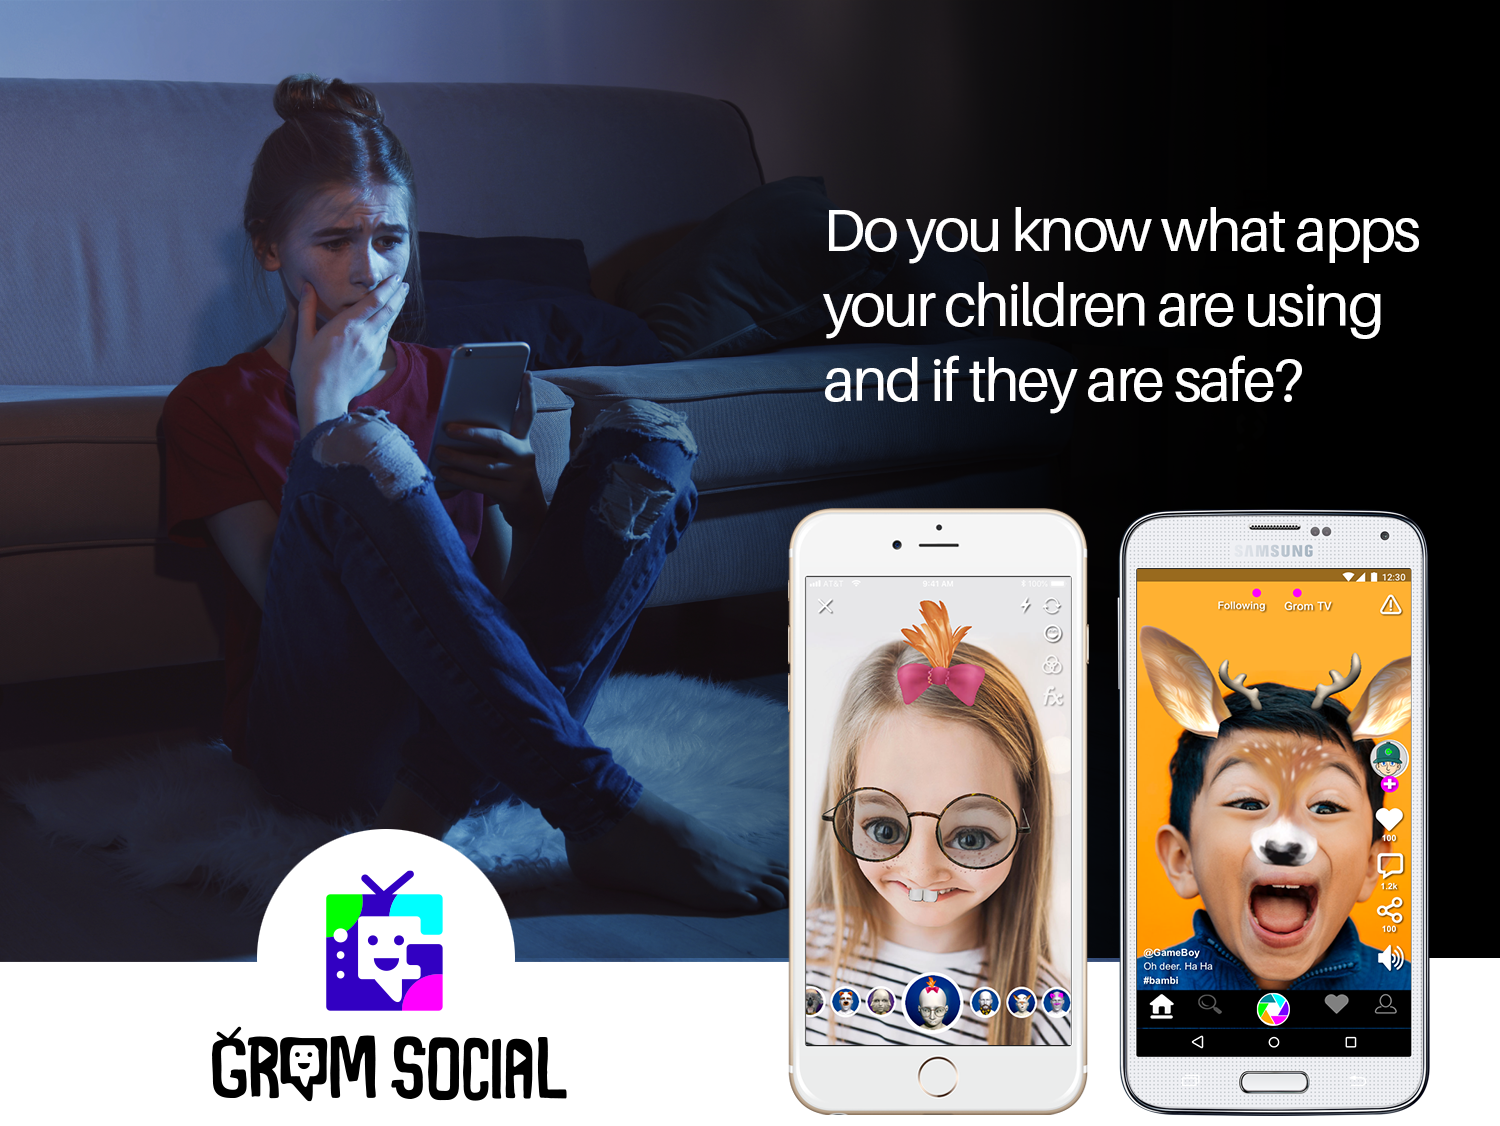 Grom Social is safe for kids